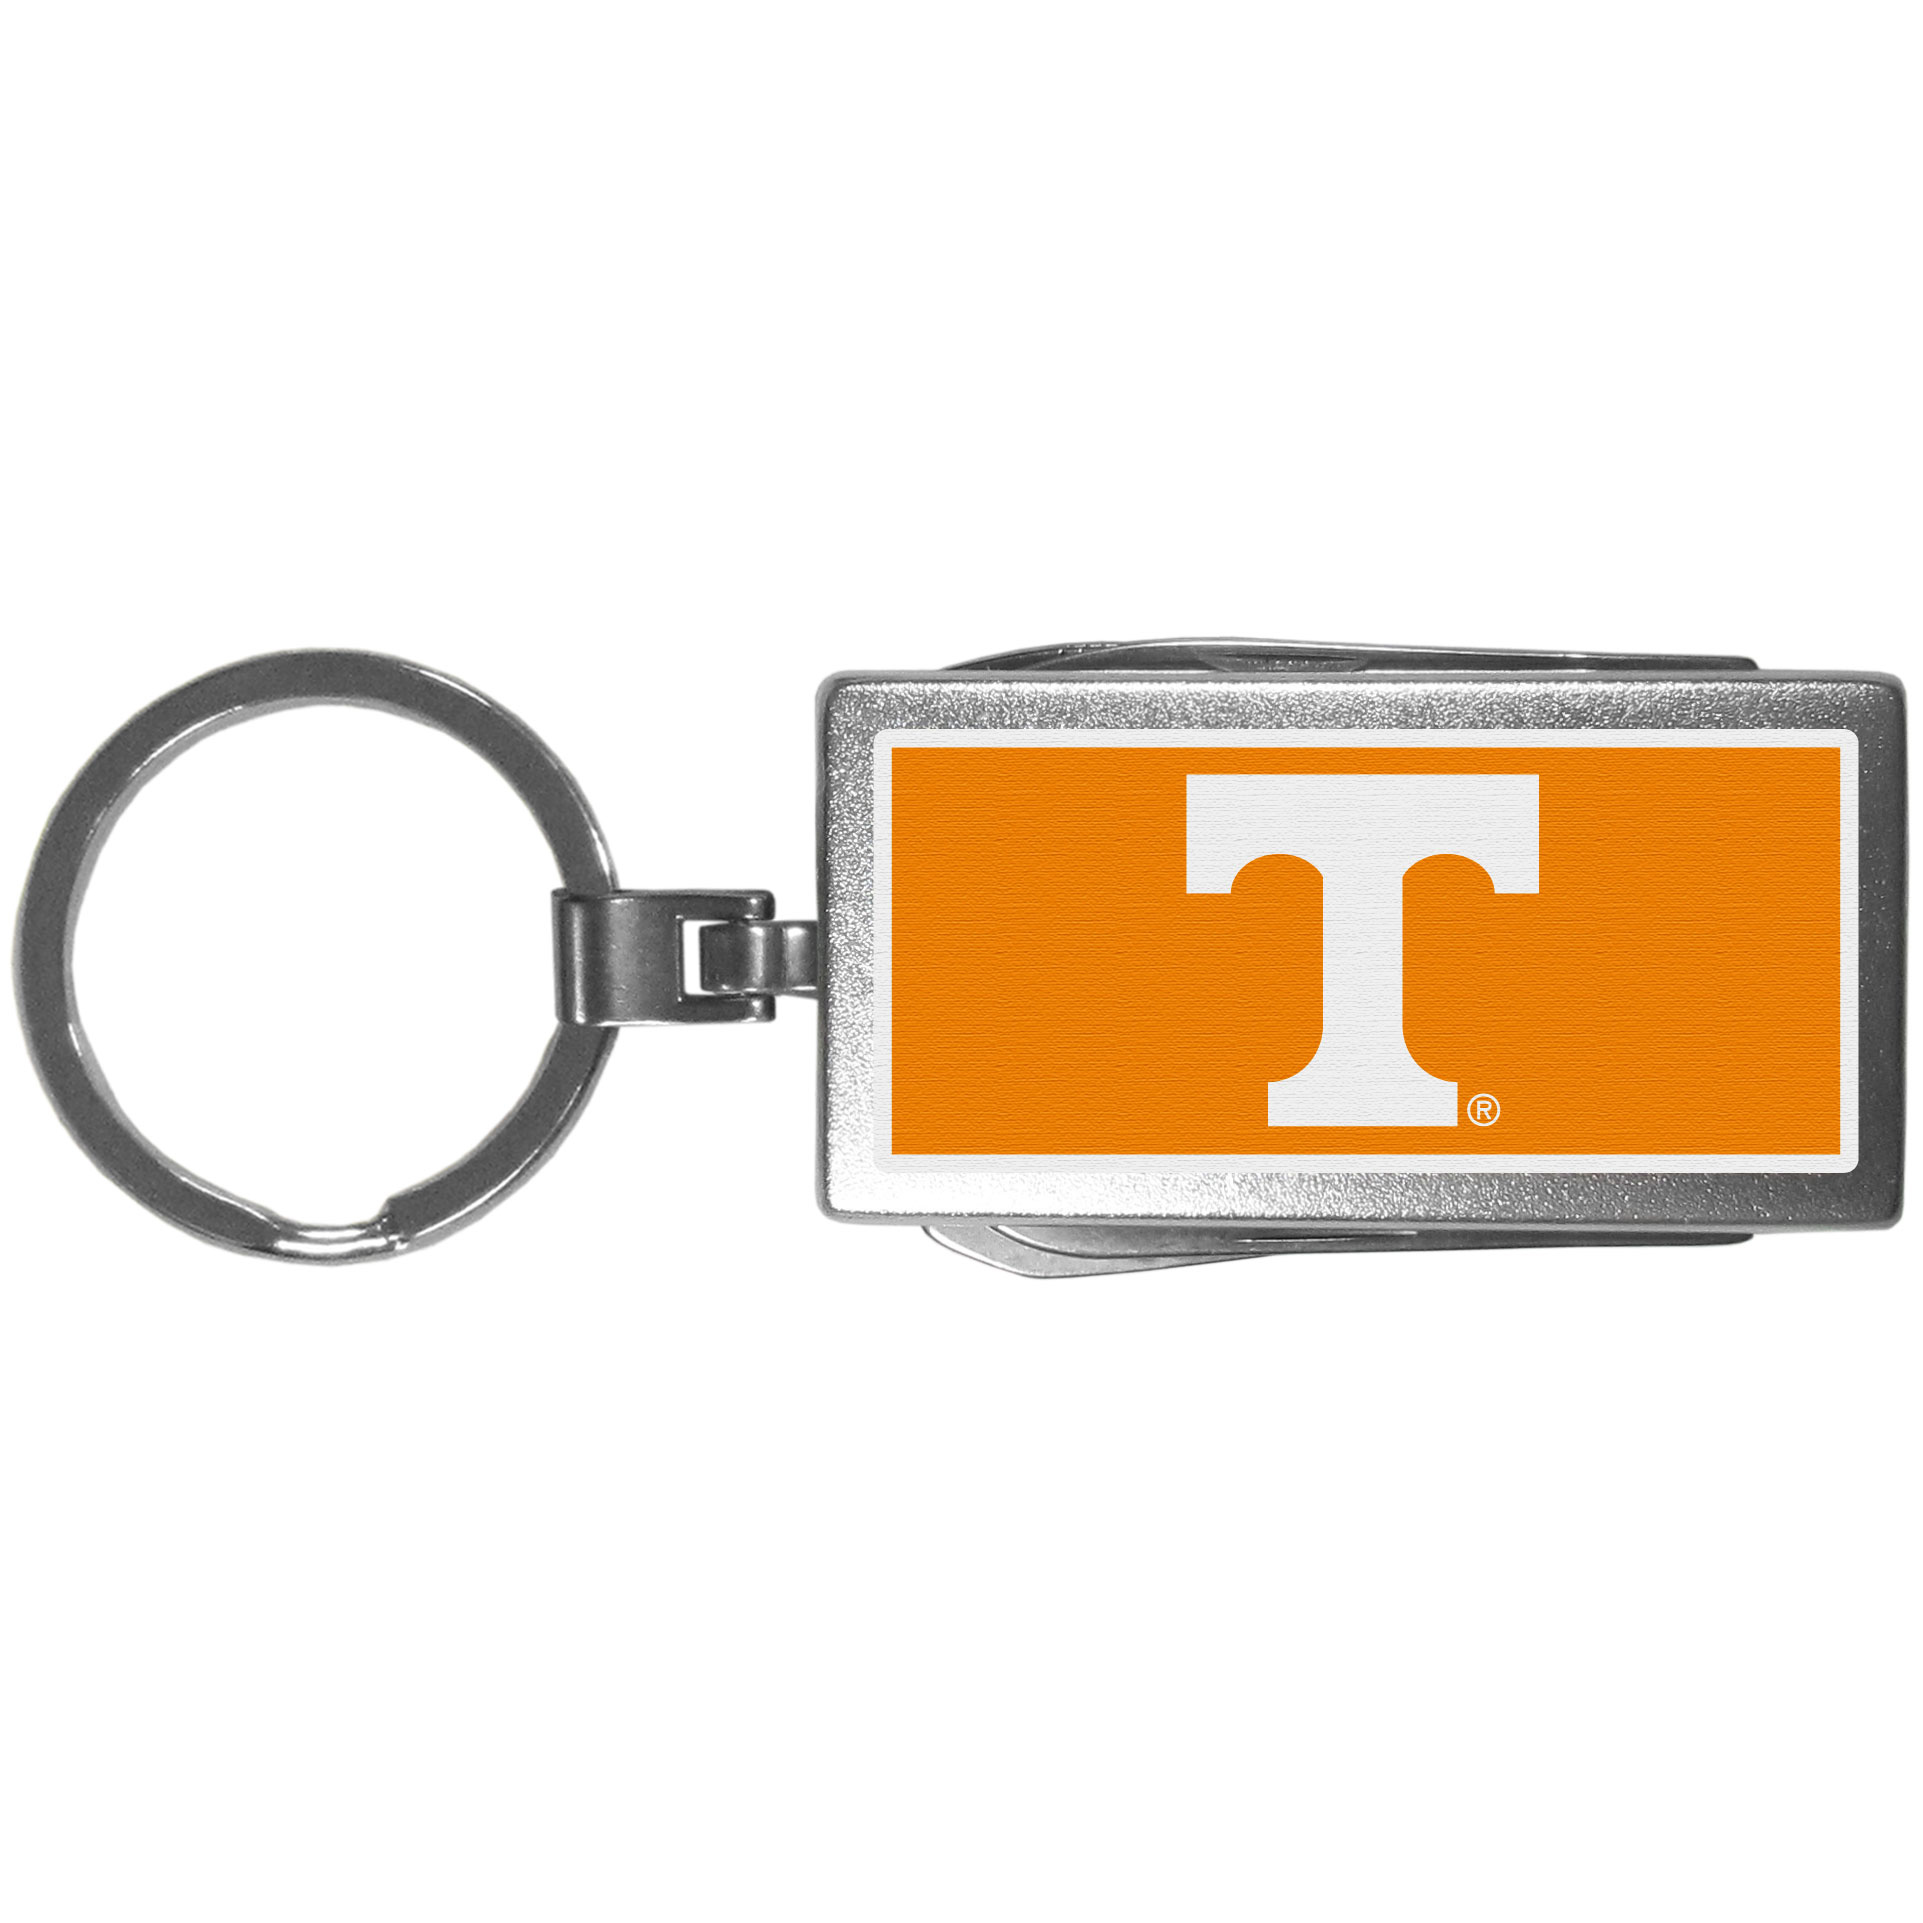 Tennessee Volunteers Multi-tool Key Chain, Logo - Be the hero at the tailgate, camping, or on a Friday night with your Tennessee Volunteers Multi-Tool Keychain which comes complete with bottle opener, scissors, knife, nail file and screw driver. Be it opening a package or a beverage Siskiyou's Multi-Tool Keychain goes wherever your keys do. The keychain hangs at 4 inches long when closed.